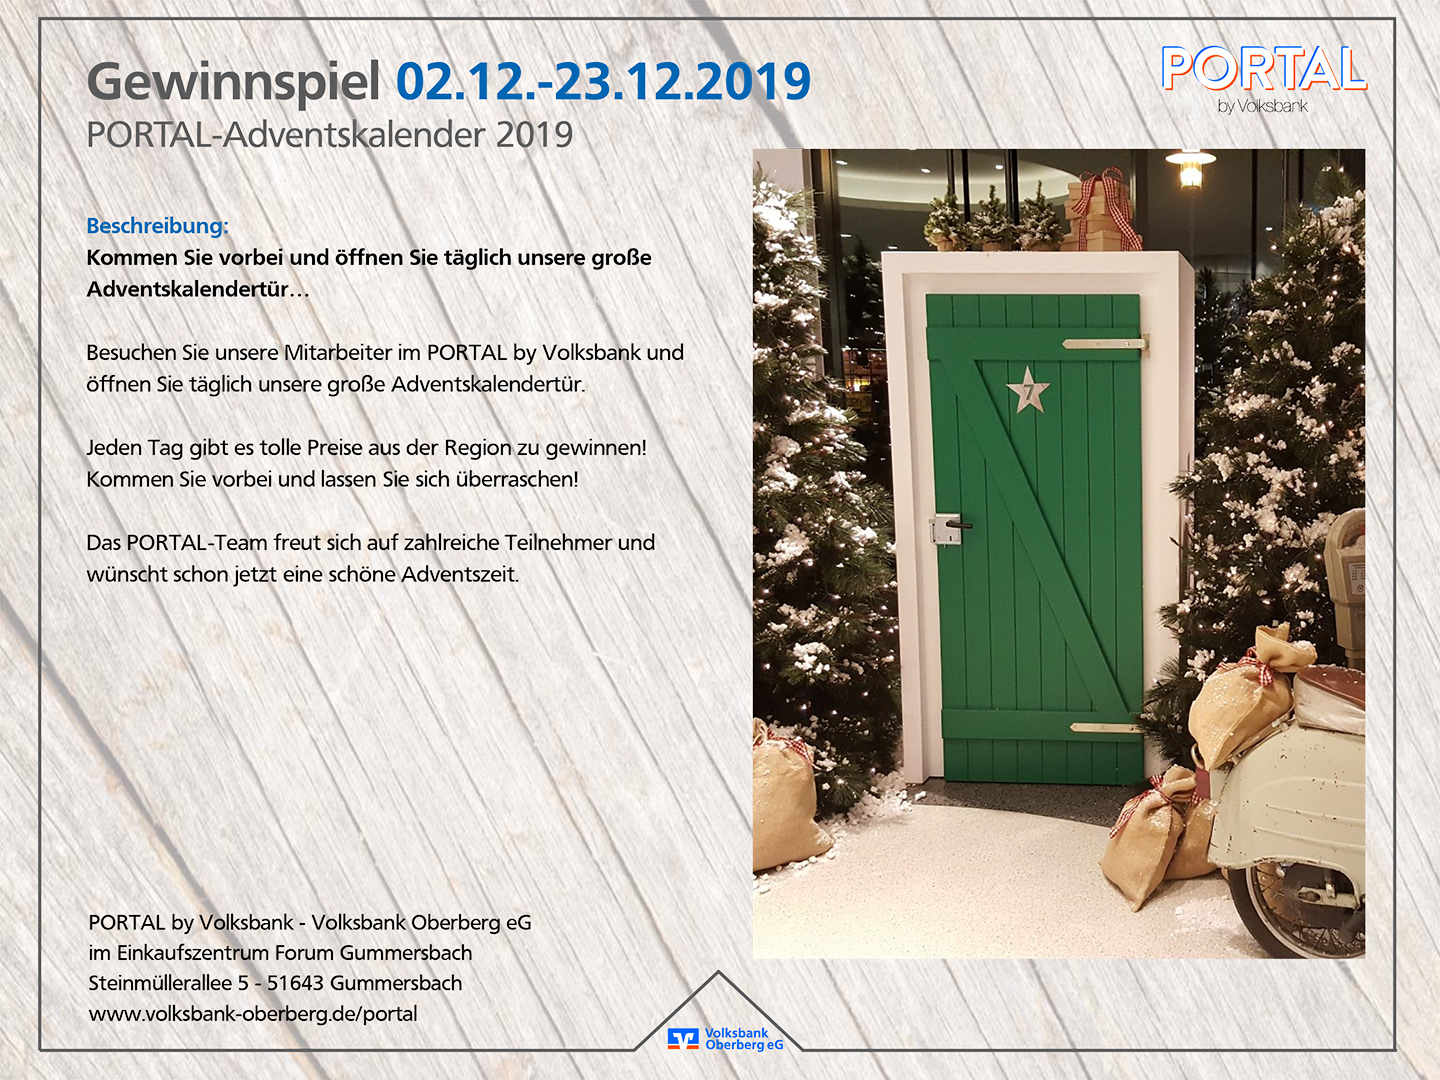 PORTAL by Volksbank | Adventskalender 2019